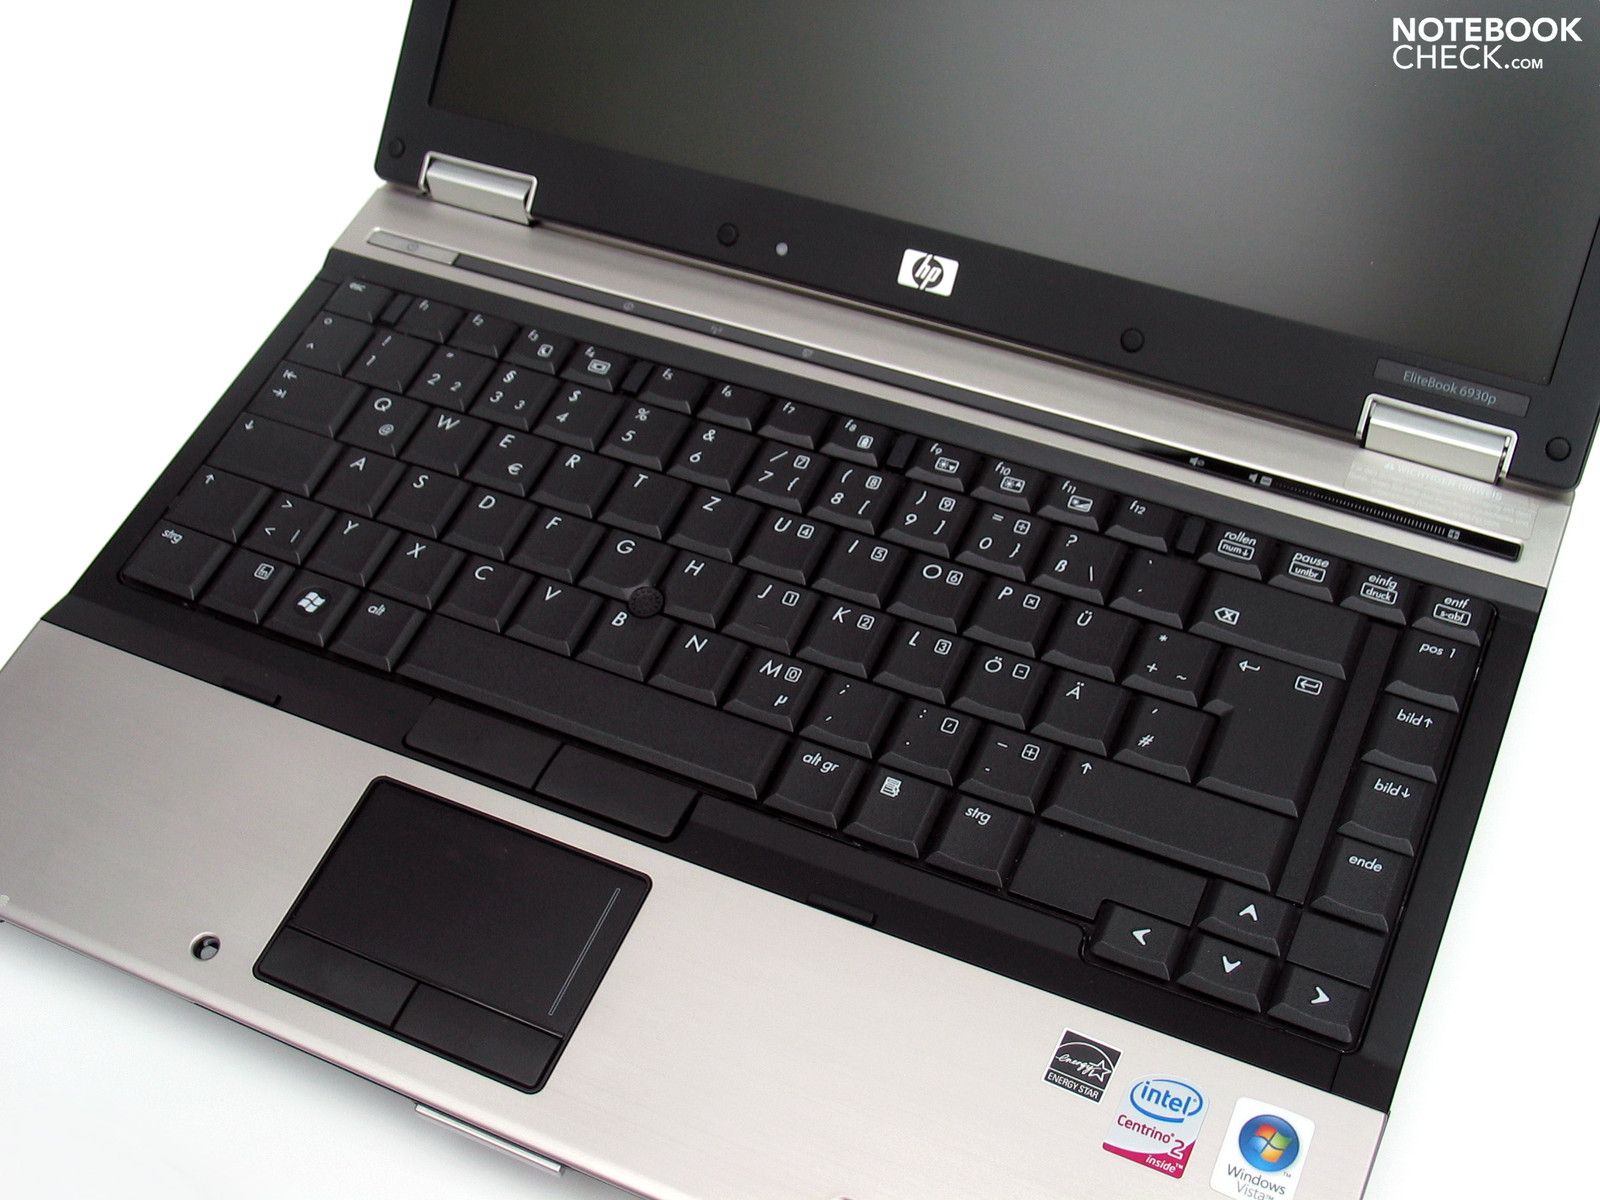 Review HP EliteBook 6930p Notebook - NotebookCheck net Reviews